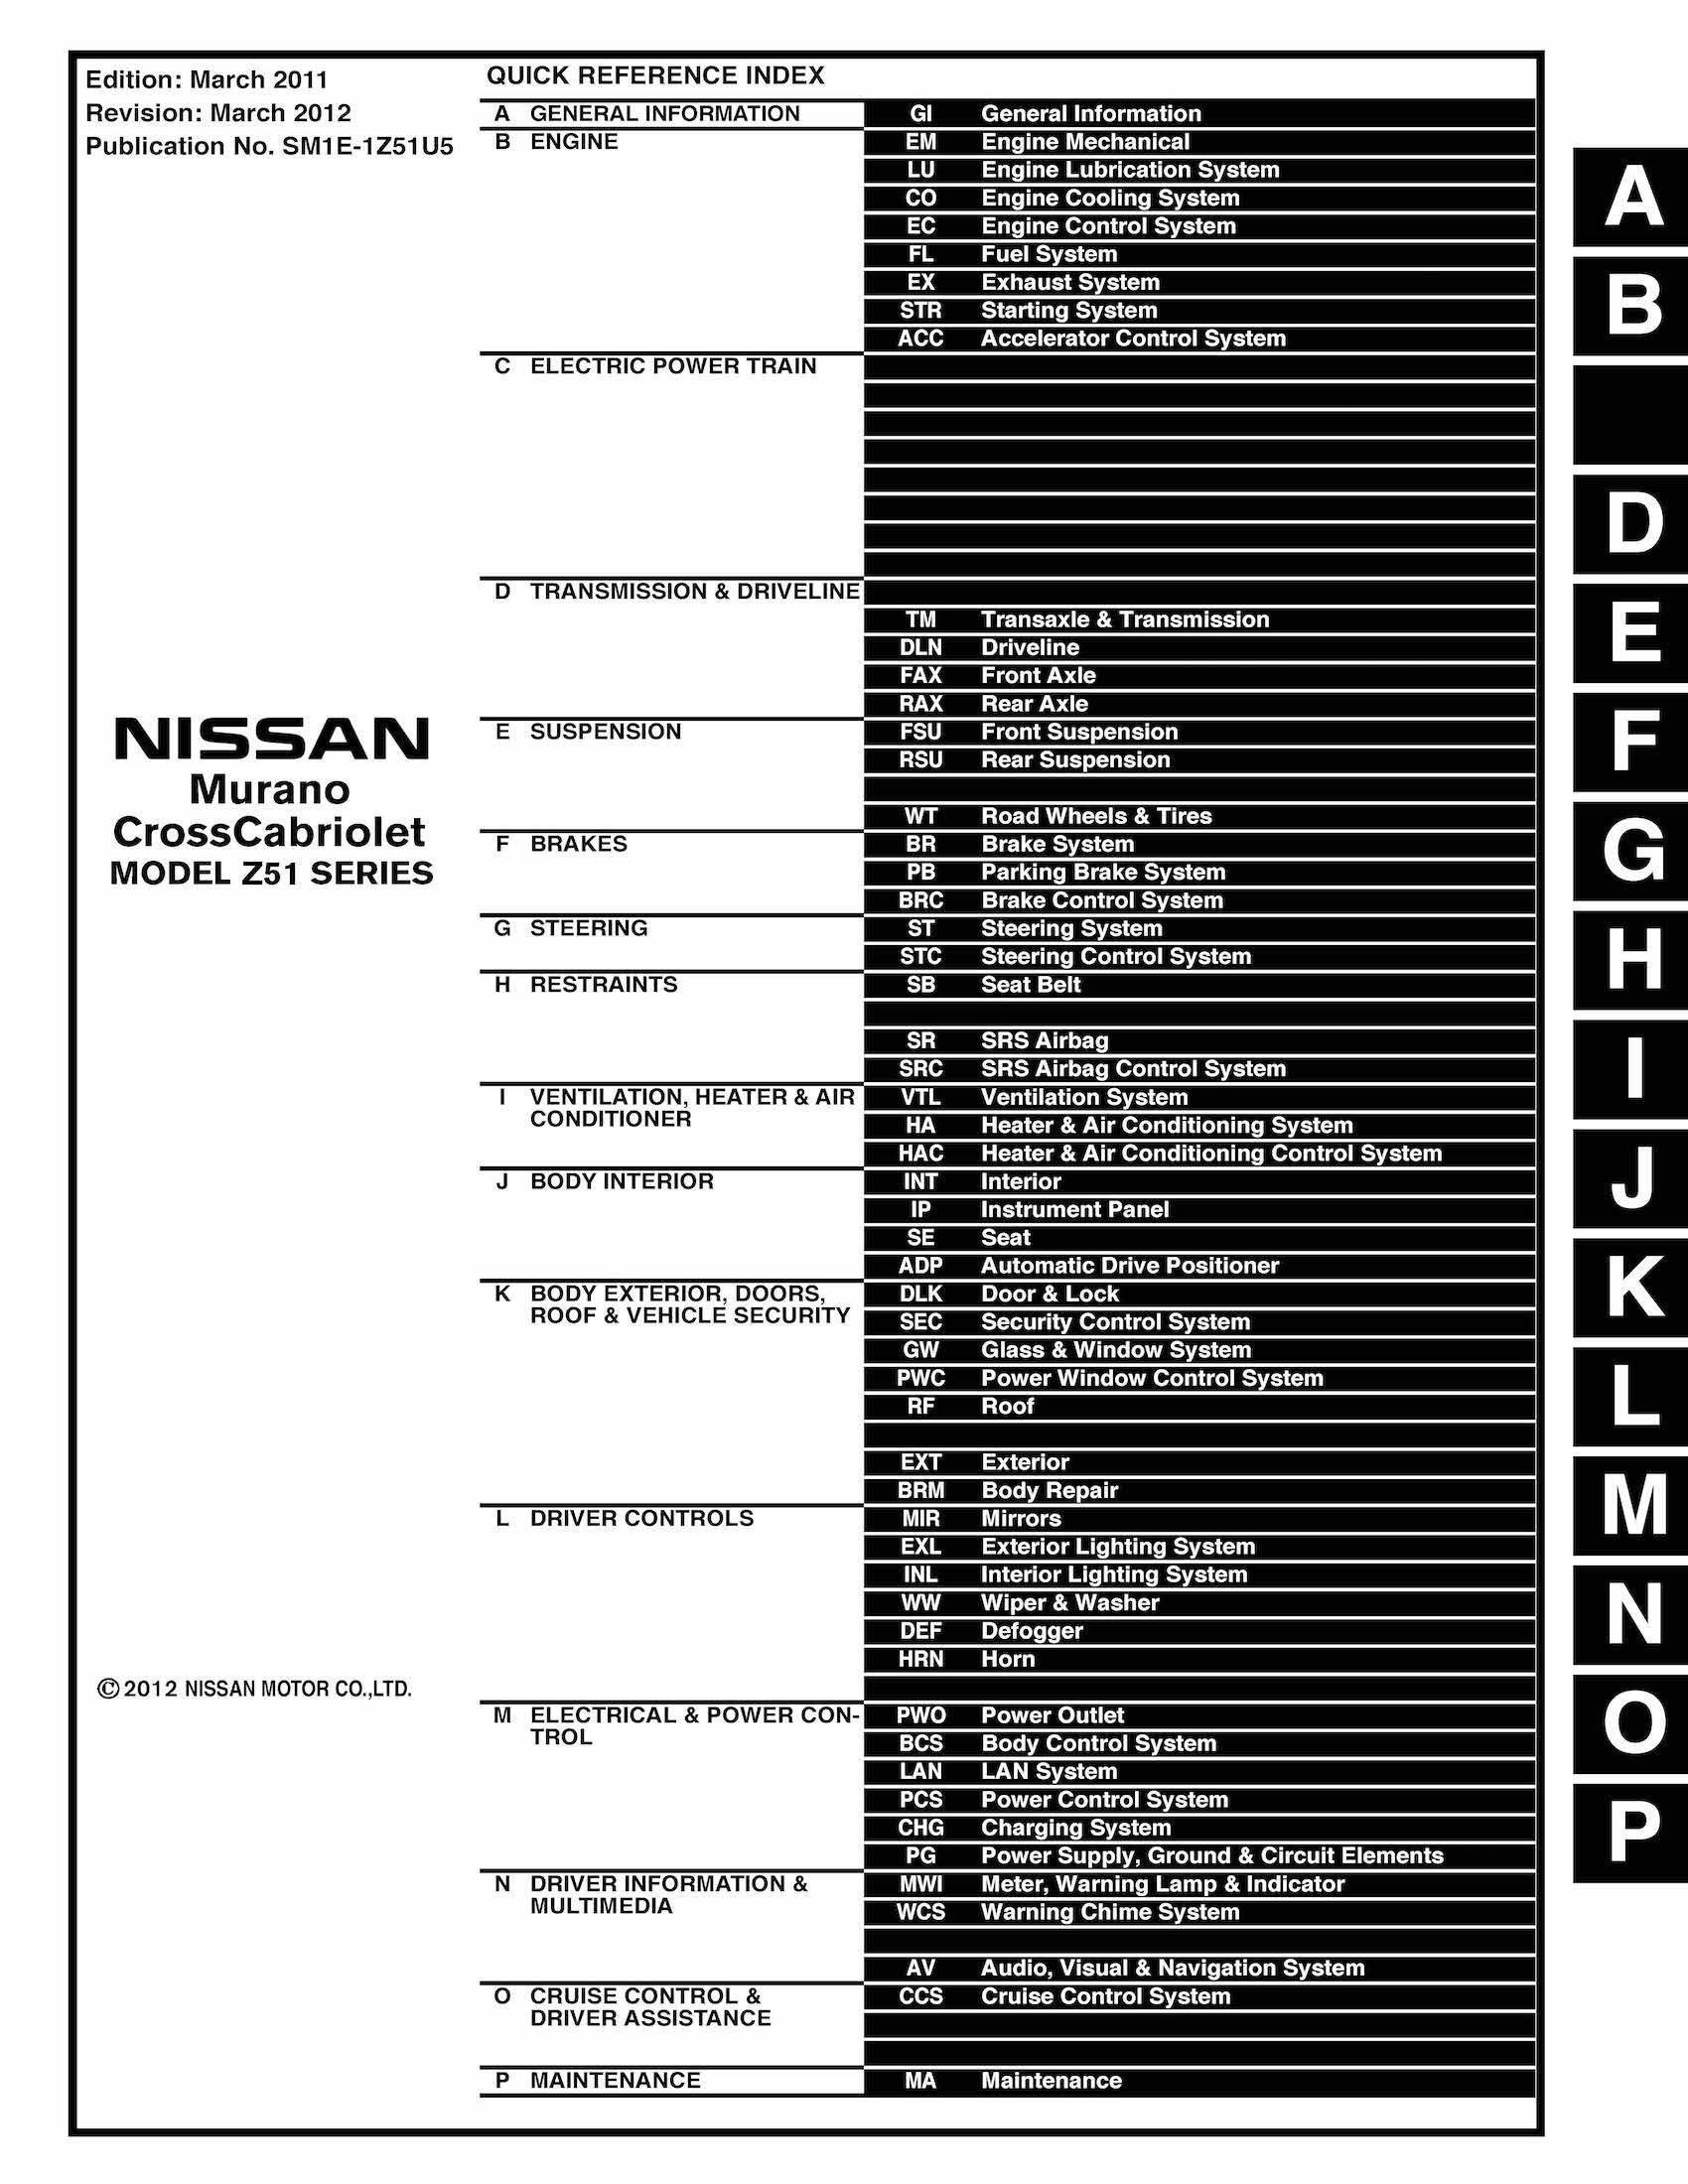 This is OEM Factory Service Repair Manual for Nissan Murano including  electrical wiring diagrams, collision body repair manual for models from  2005 to 2011, ...